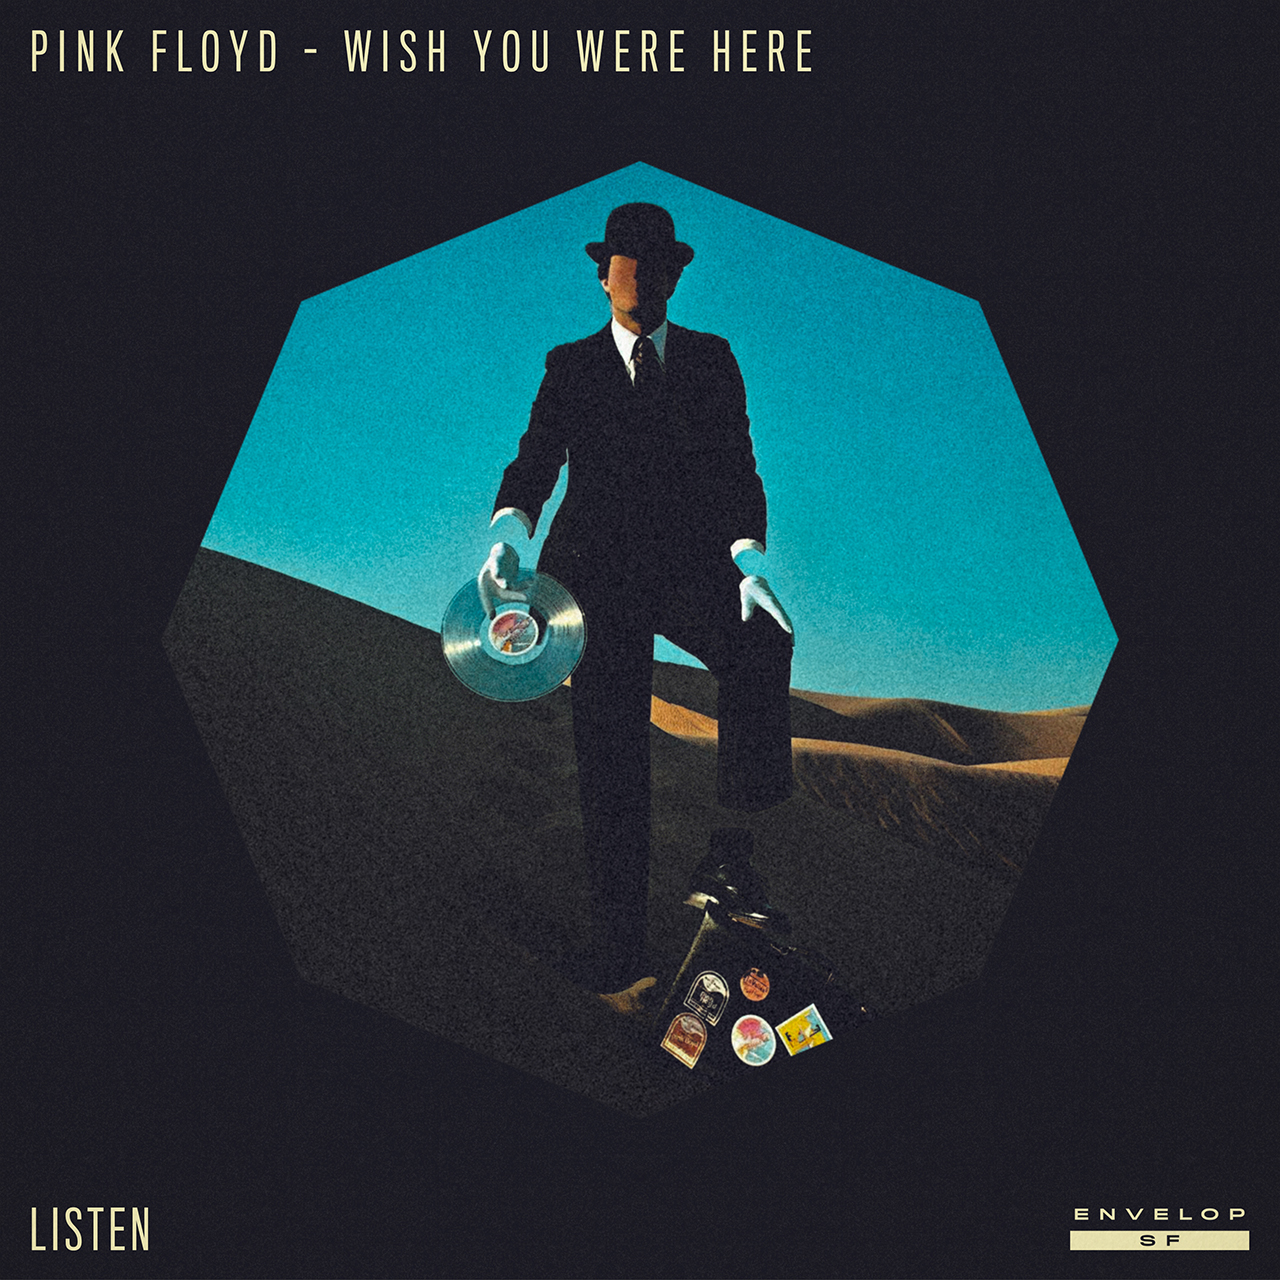 Pink Floyd - Wish You Were Here : LISTEN  Wed September 5, 2018 | At Envelop SF | 1st session - 7:30 PM Doors // 2nd session - 9:30 PM Doors